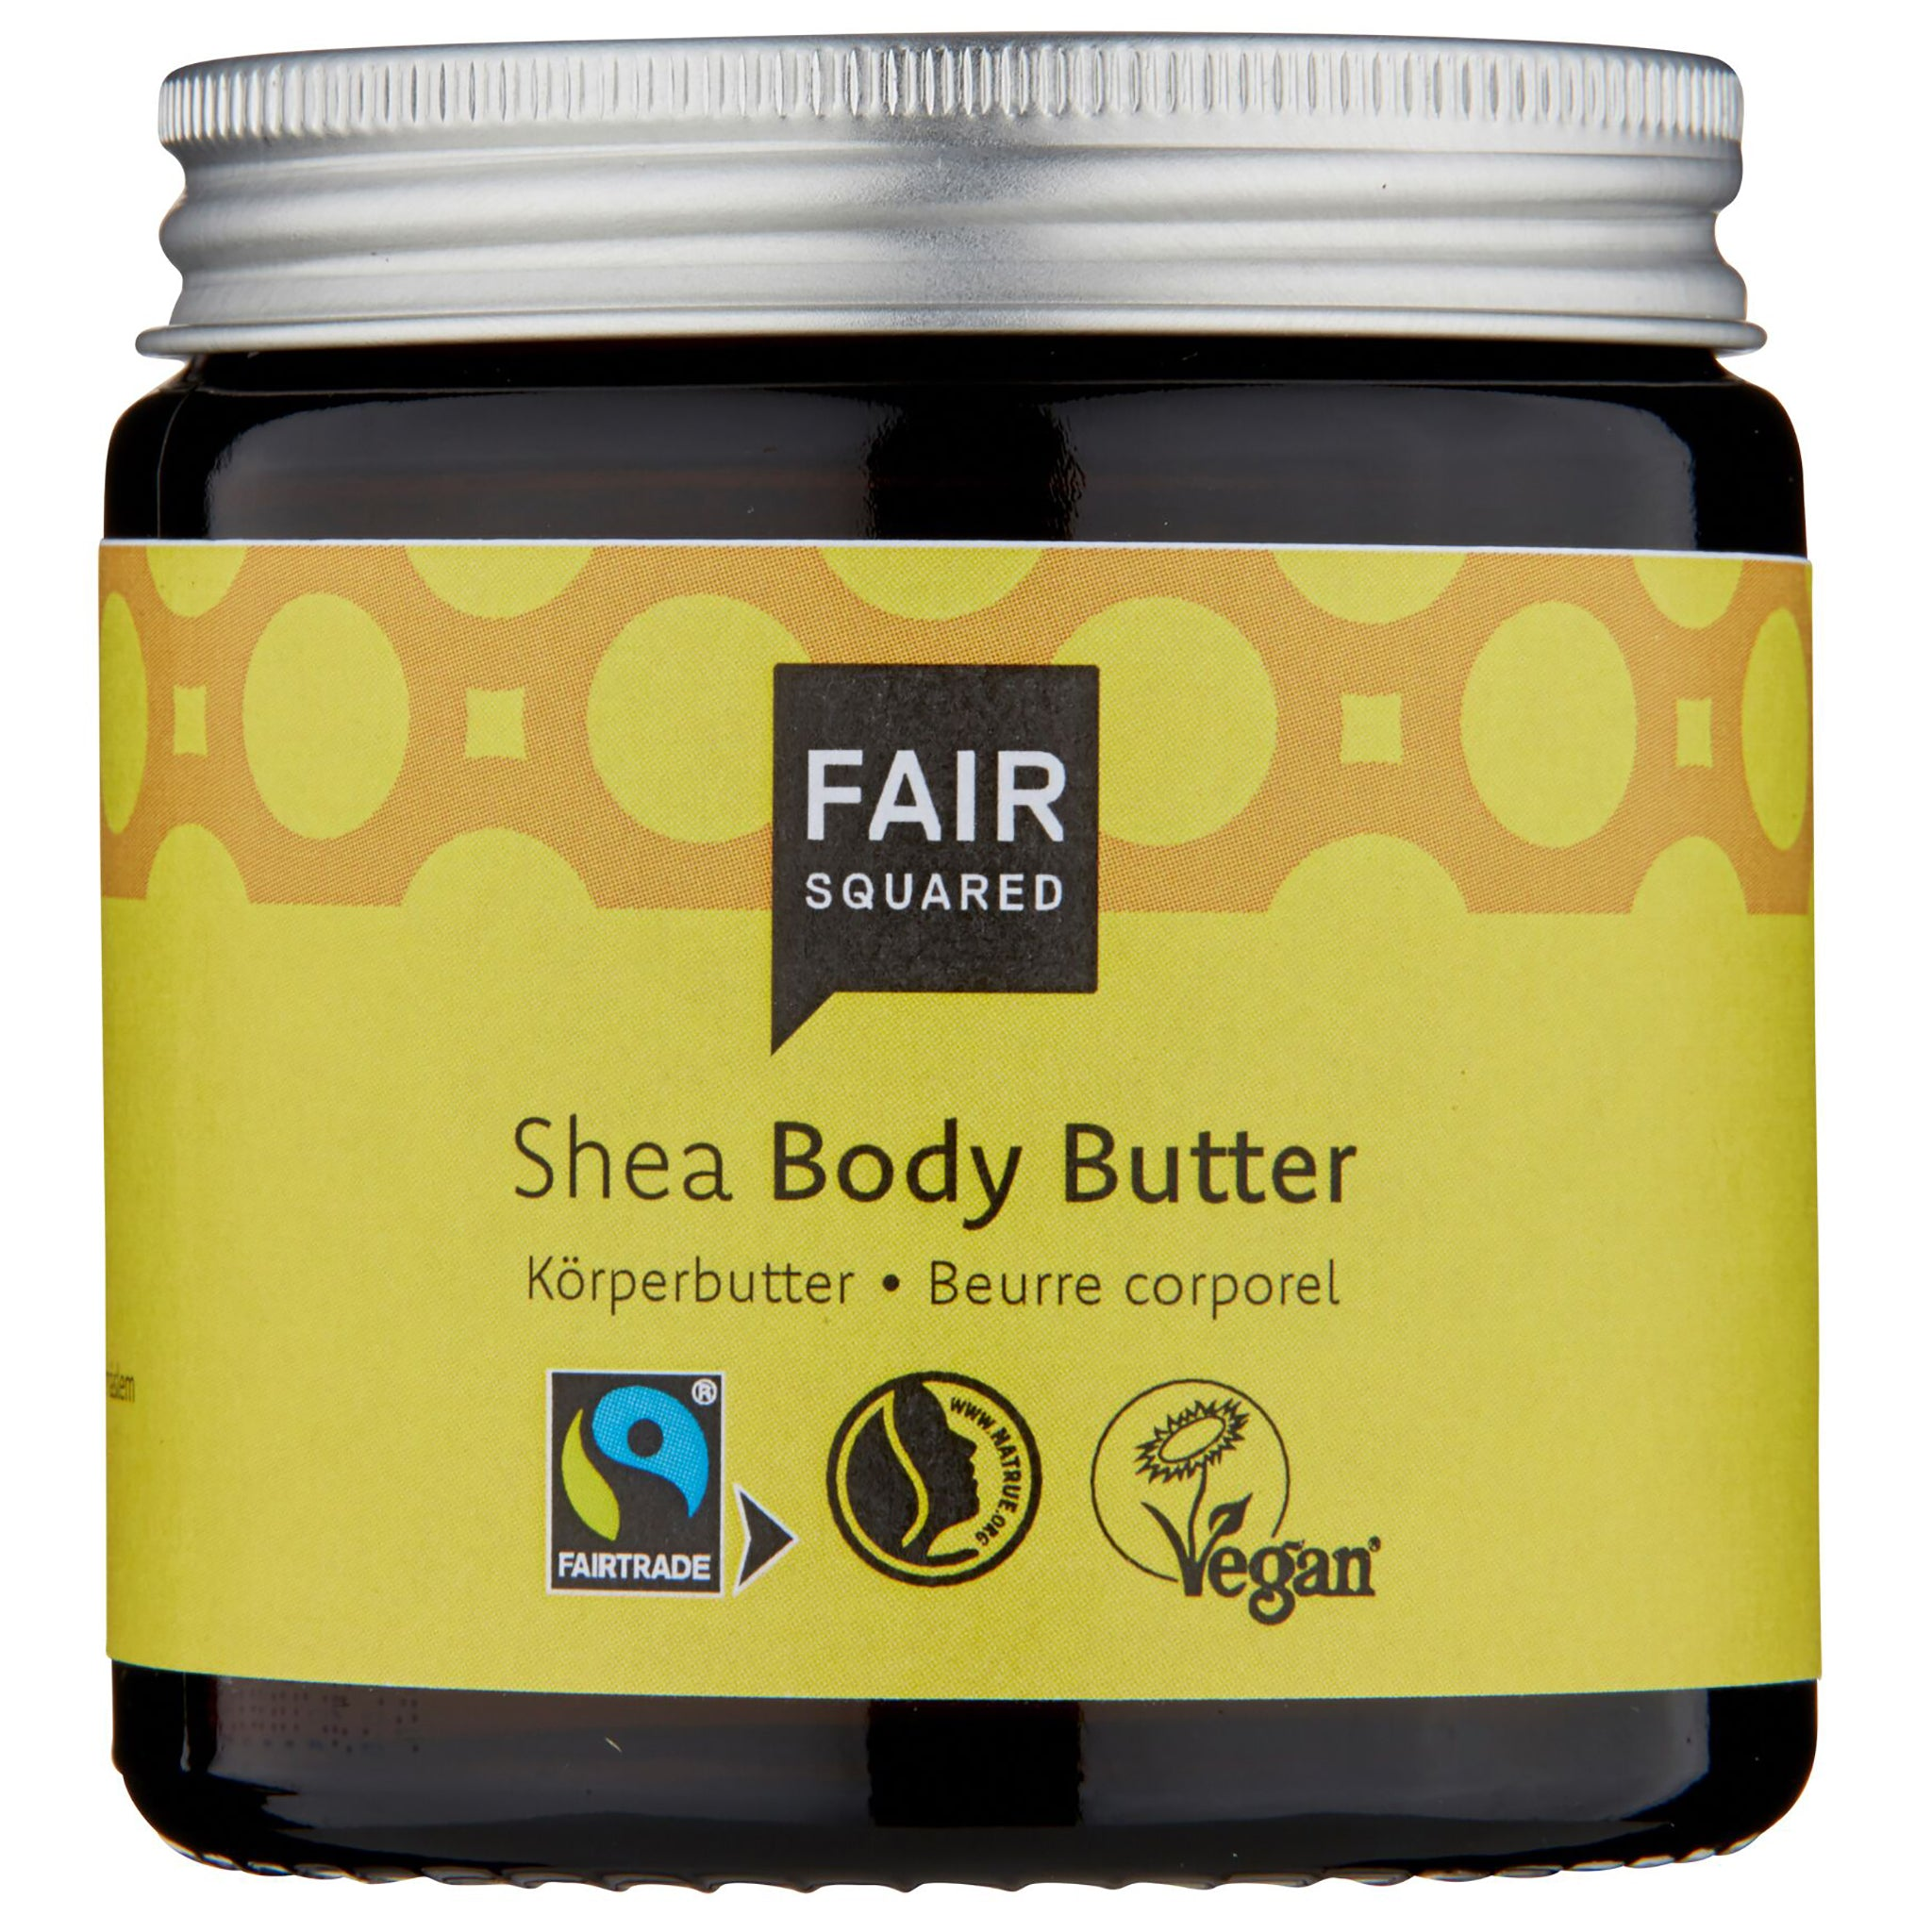 Shea Body Butter - Zero Waste